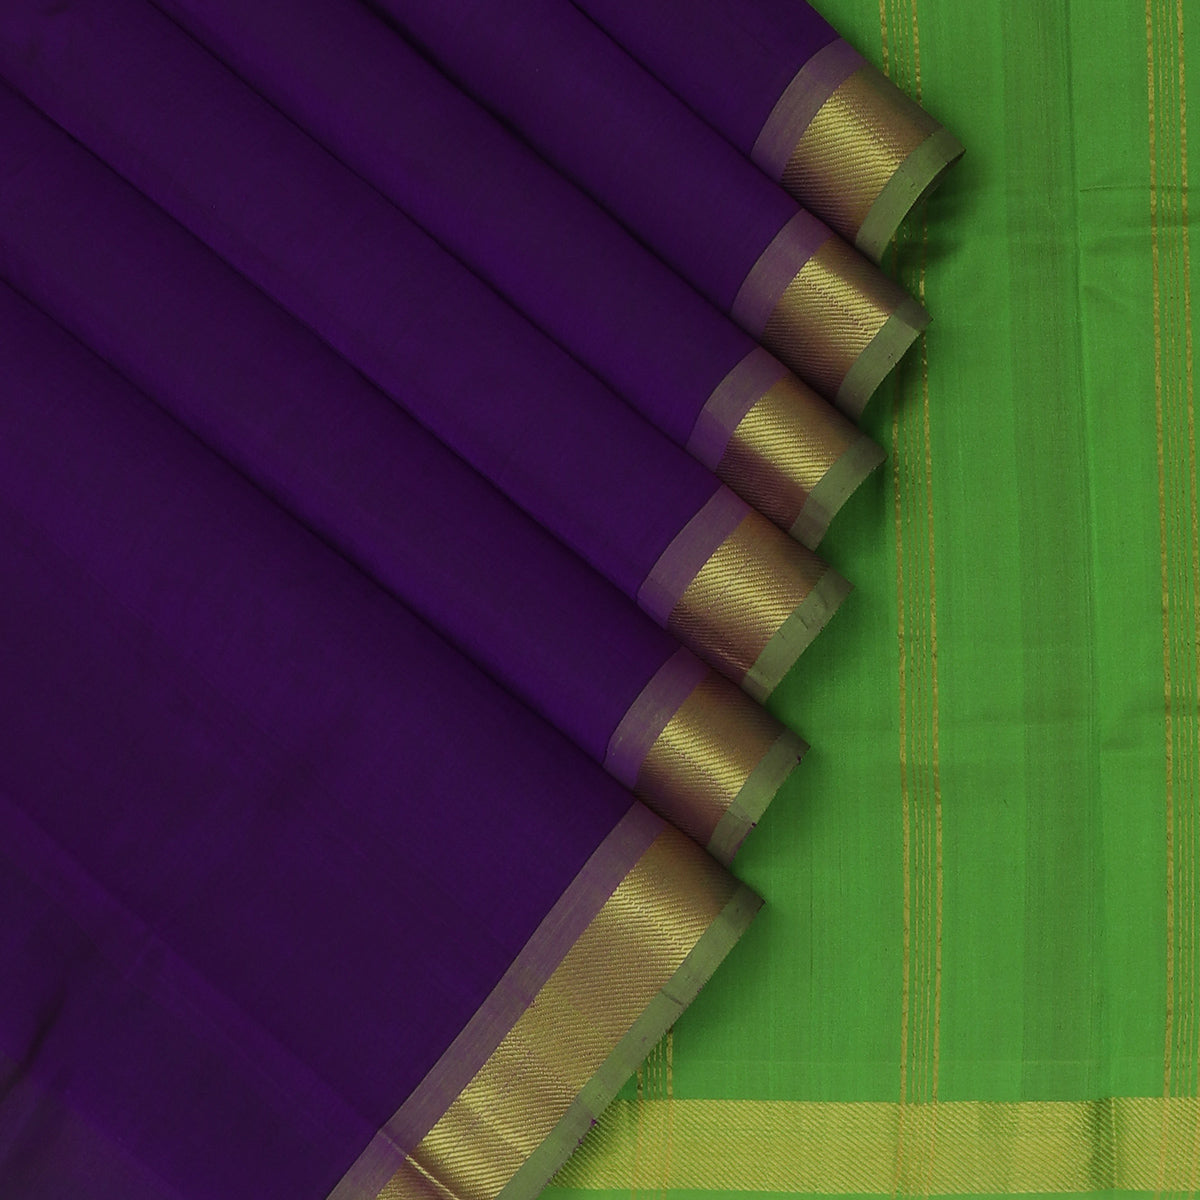 Silk Cotton Saree-Indigo Blue and Light Green with Zari border